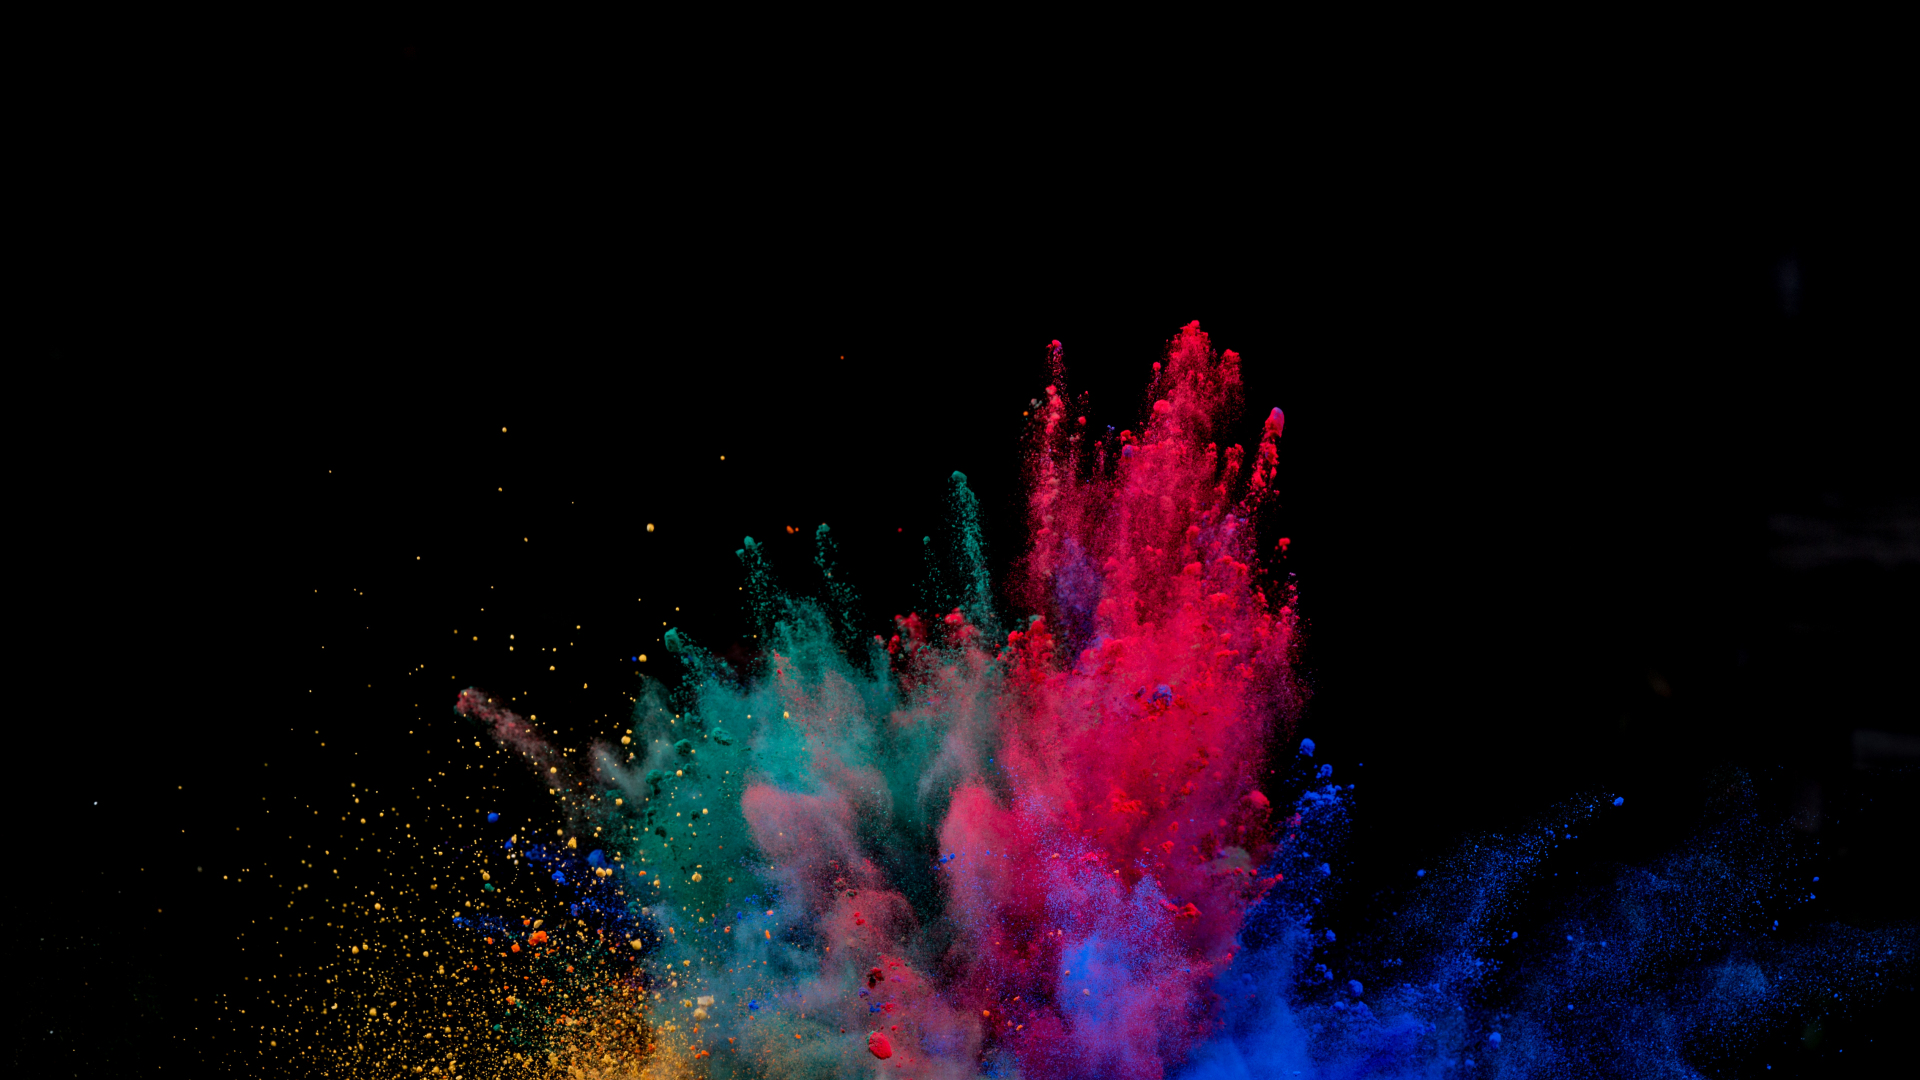 Download 1920x1080 wallpaper colors blast explosion colorful full hd hdtv fhd 1080p - 1366x768 is 720p or 1080p ...